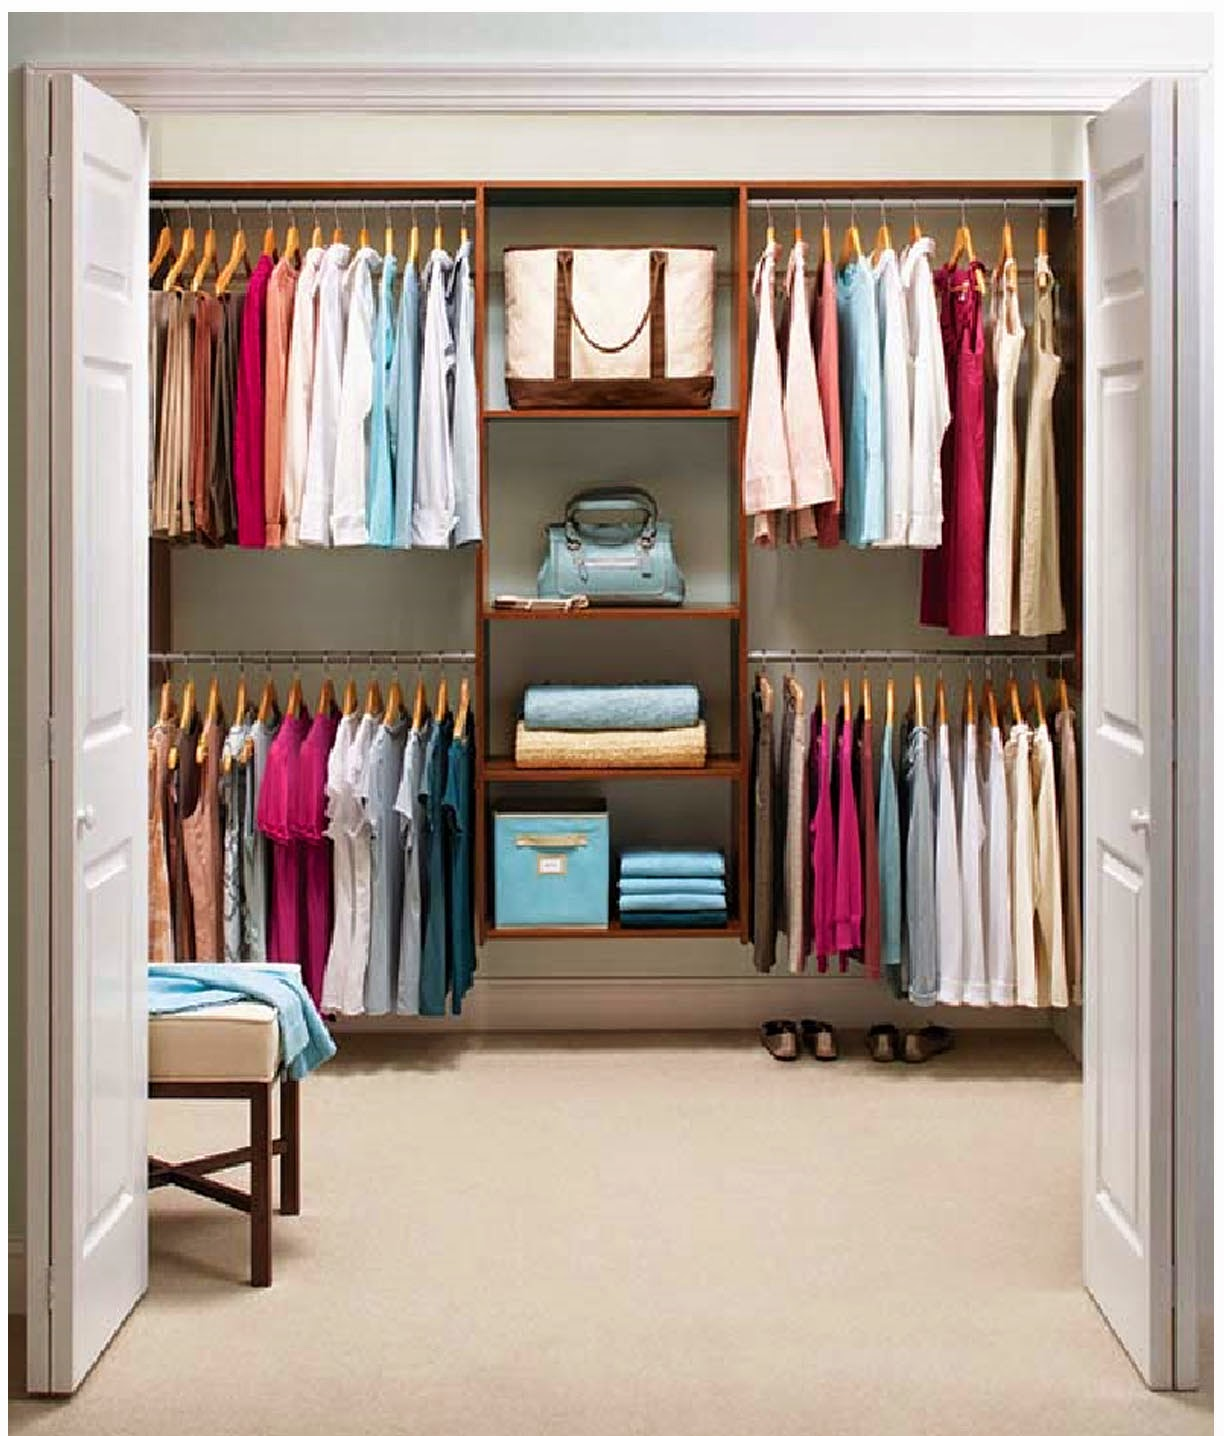 Virlova interiorismo for Closet para habitaciones pequenas